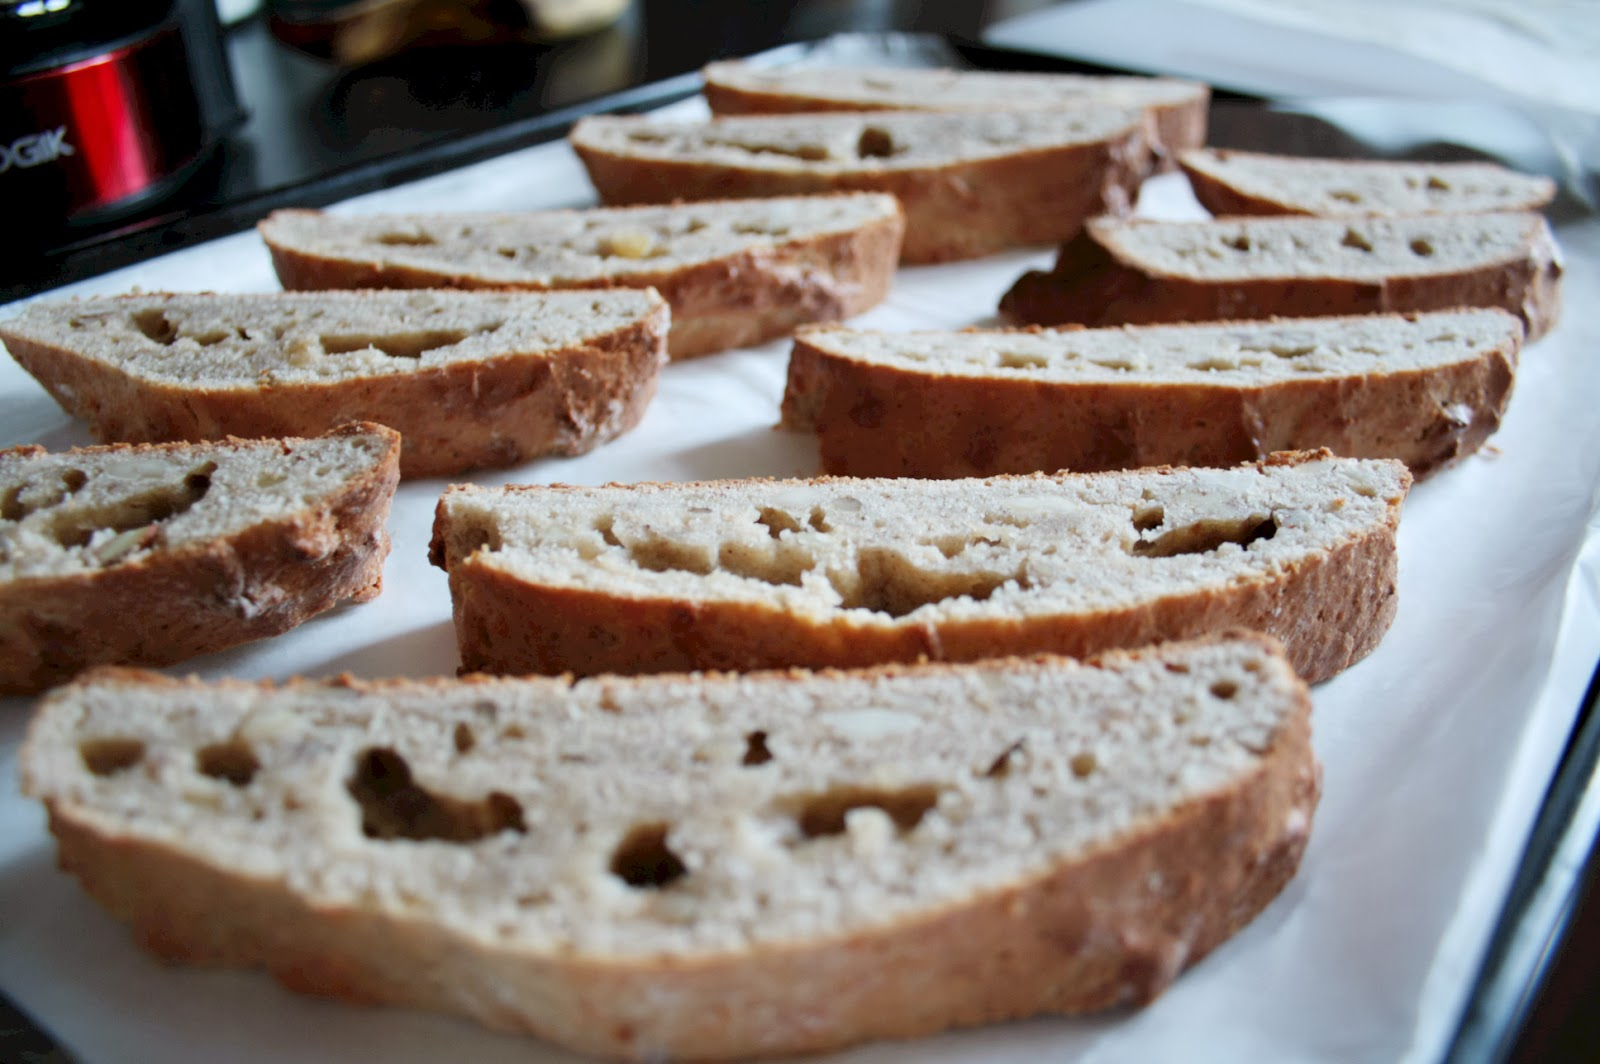 Use brown bananas to make these cafe style treats - banana and nut biscotti